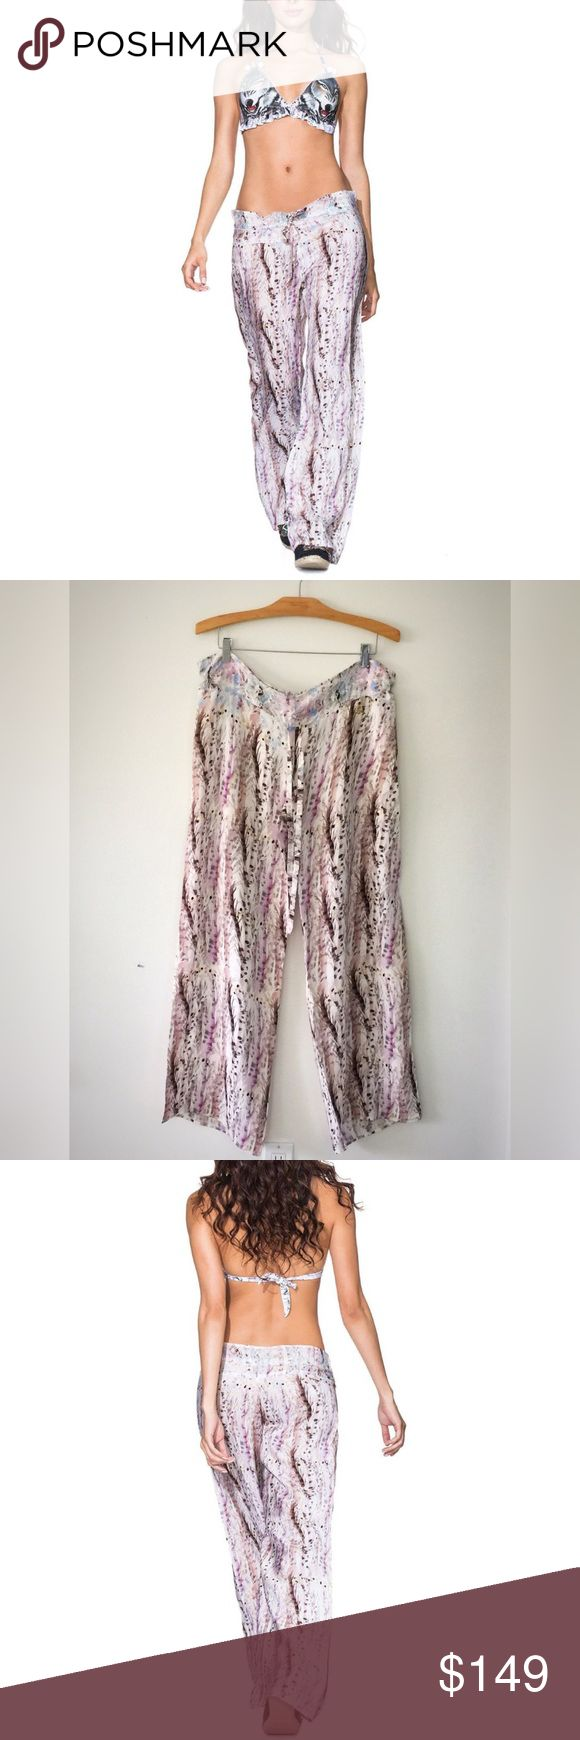 NWT AGUA BENDITA Absolutely gorgeous and impossible to find😉 BENDITO WOLF pants by Colombian luxe swim house AGUA BENDITA 2015 Collection... Drawstring waist and 💯 Silk.. these pants are a summer must have!! Never worn... tags attached... PRICE FIRM unless bundled Agua Bendita Pants